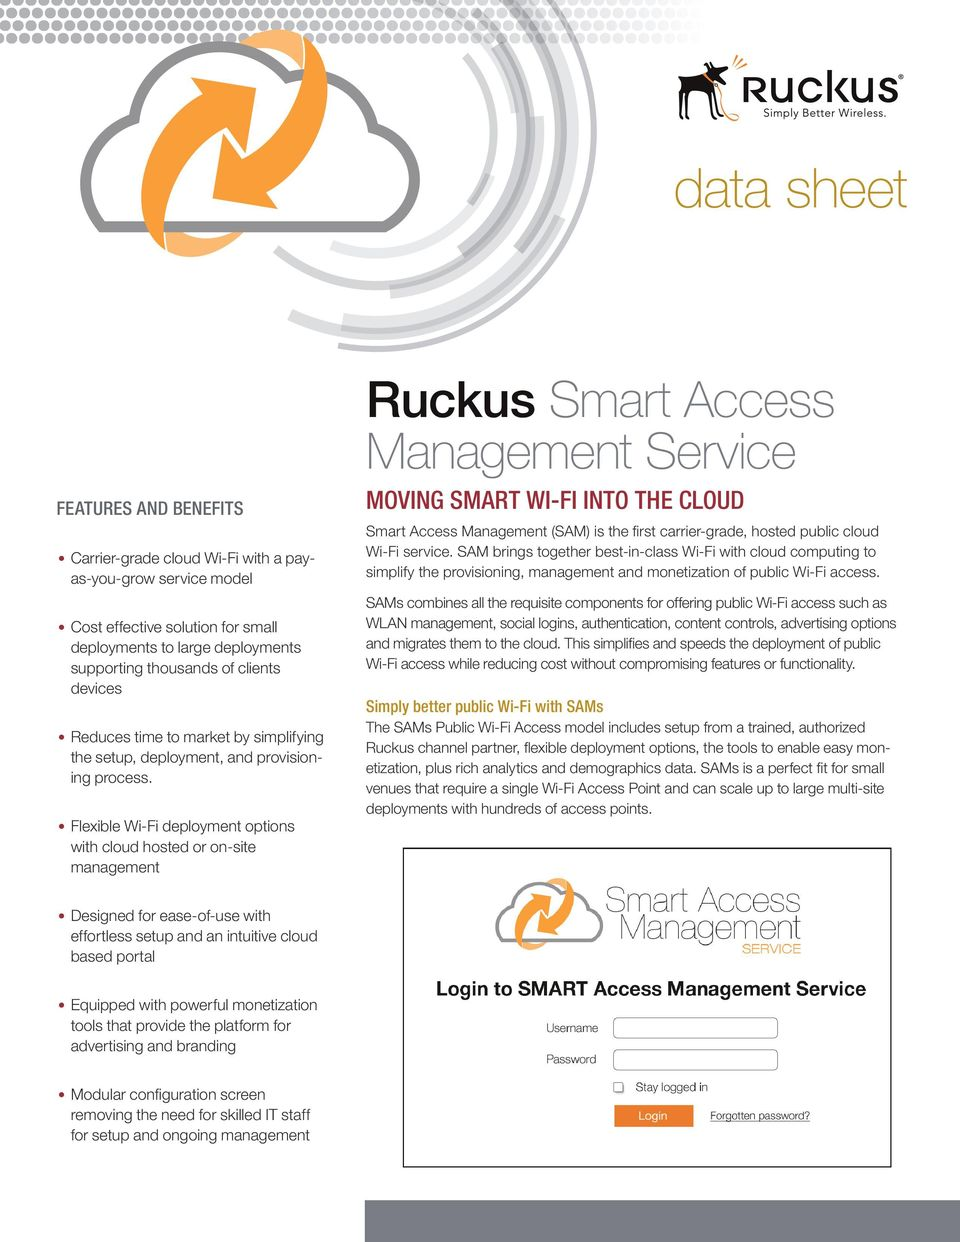 Flexible Wi-Fi deployment options with cloud hosted or on-site management Ruckus Smart Access Smart Access Management (SAM) is the first carrier-grade, hosted public cloud Wi-Fi service.